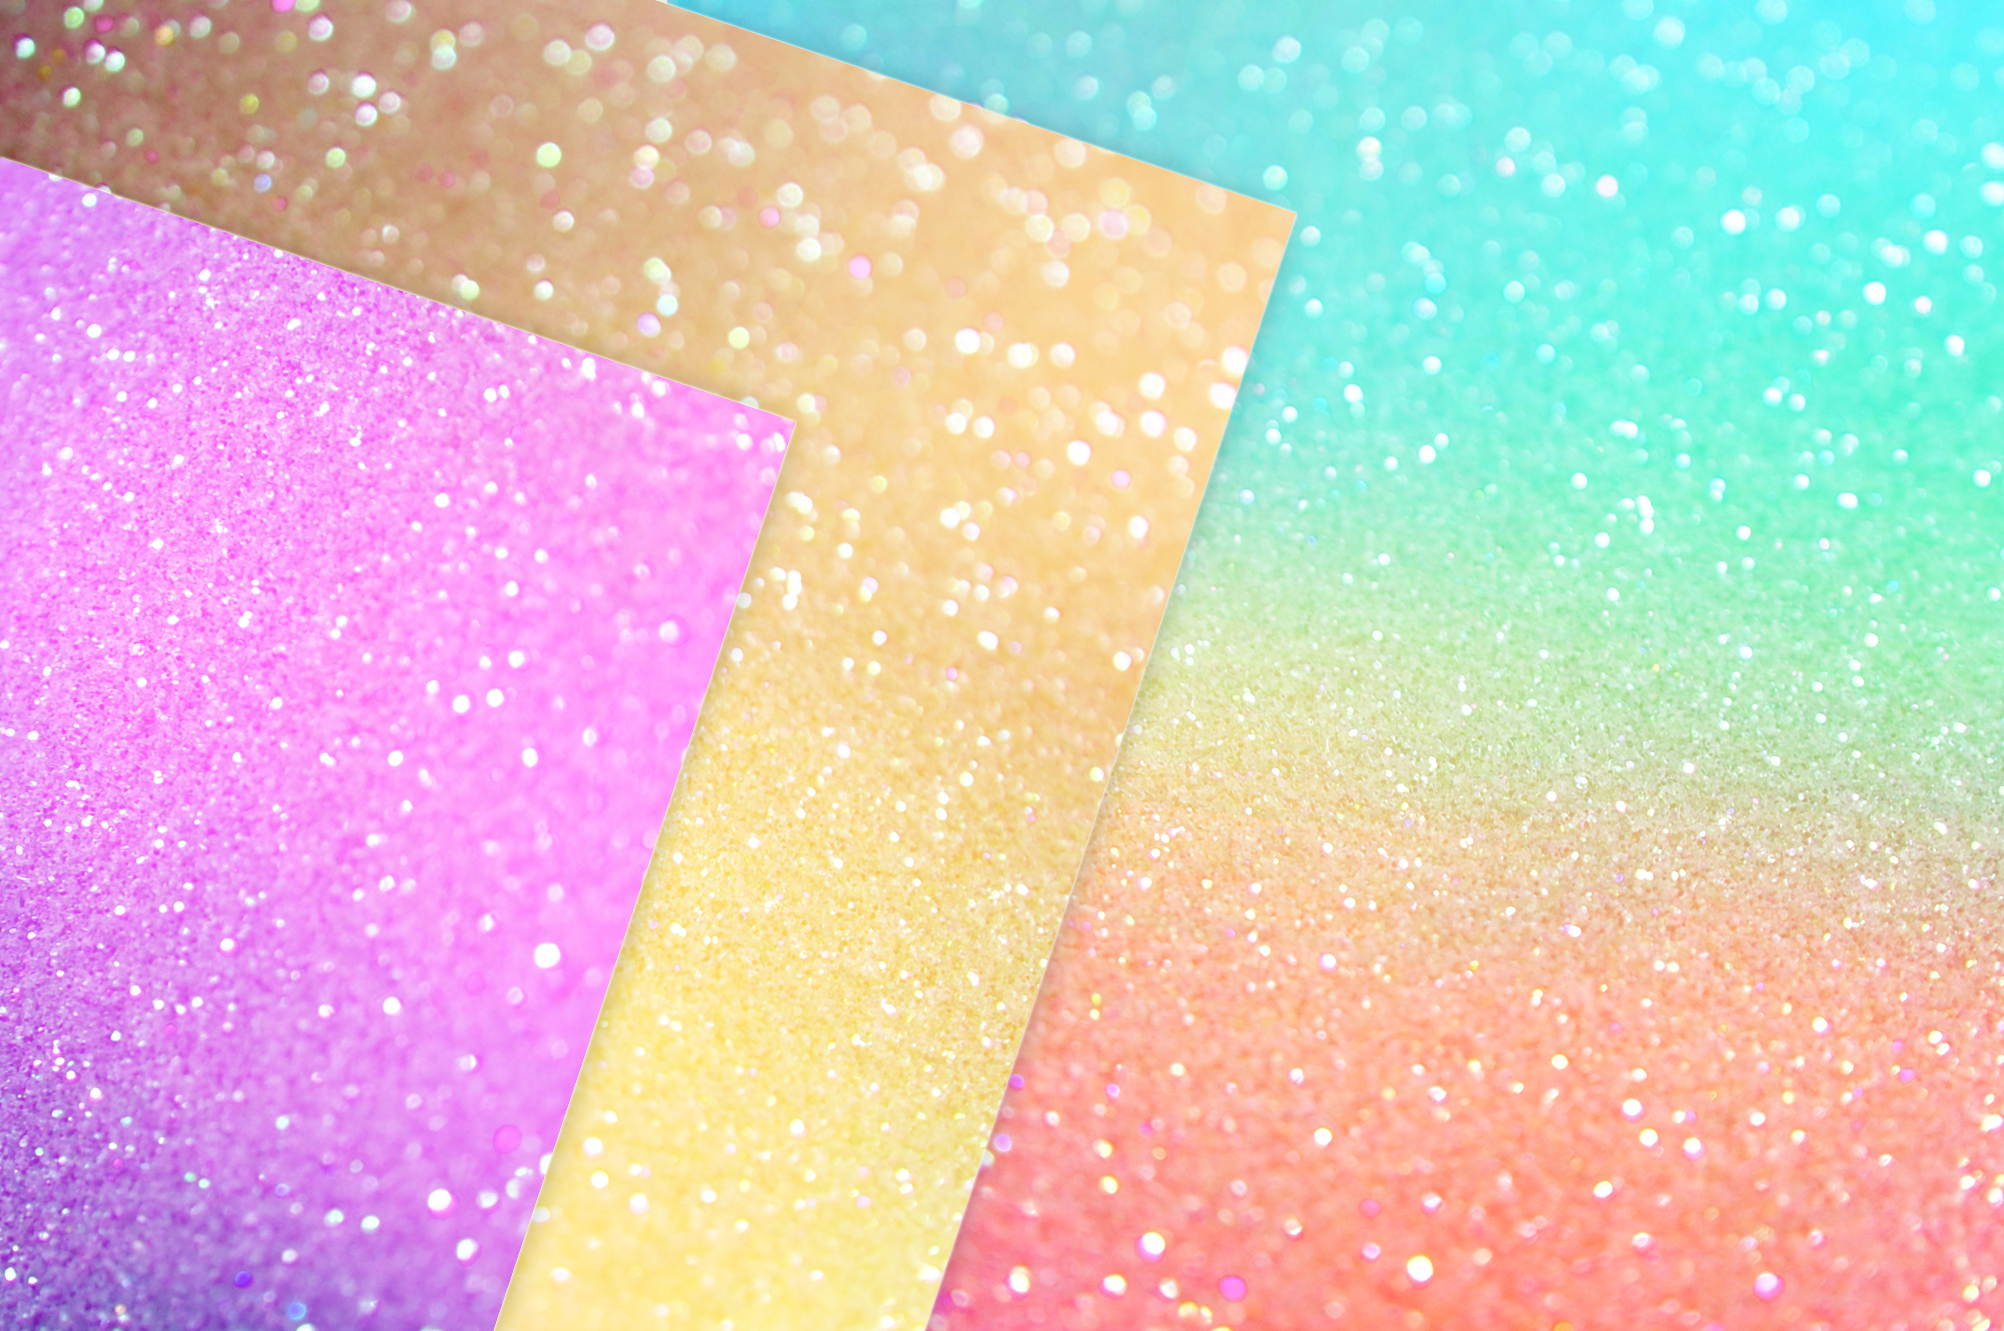 Iridescent Glitter and Foil Textures example image 8